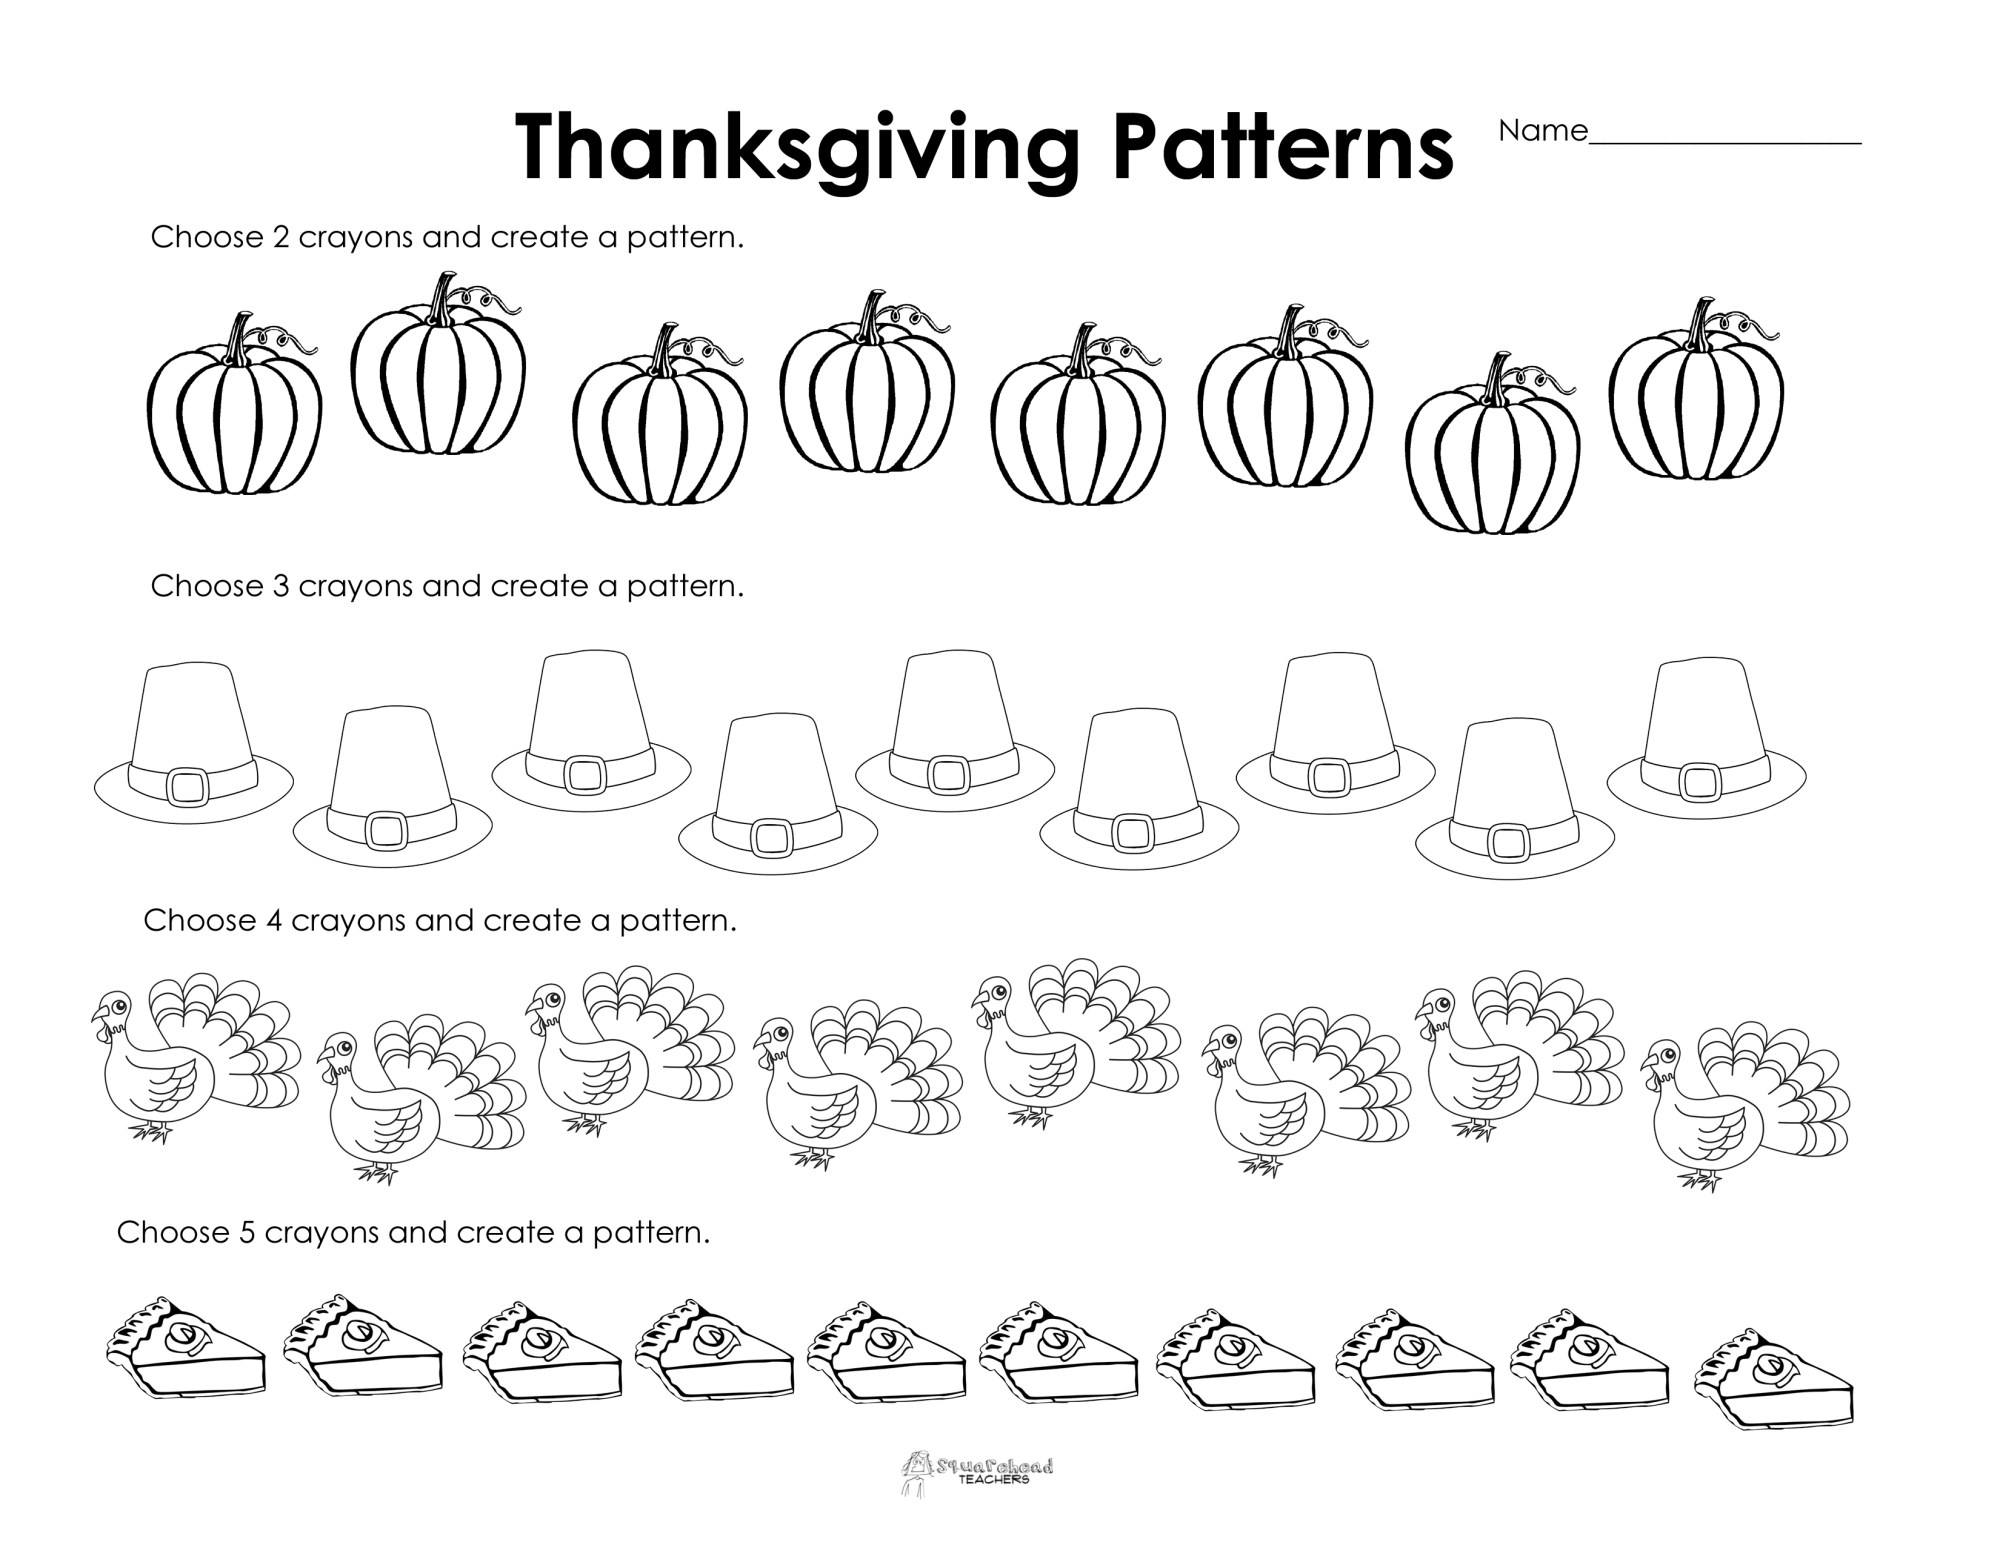 hight resolution of Making Patterns: Thanksgiving Style (free worksheet!)   Squarehead Teachers